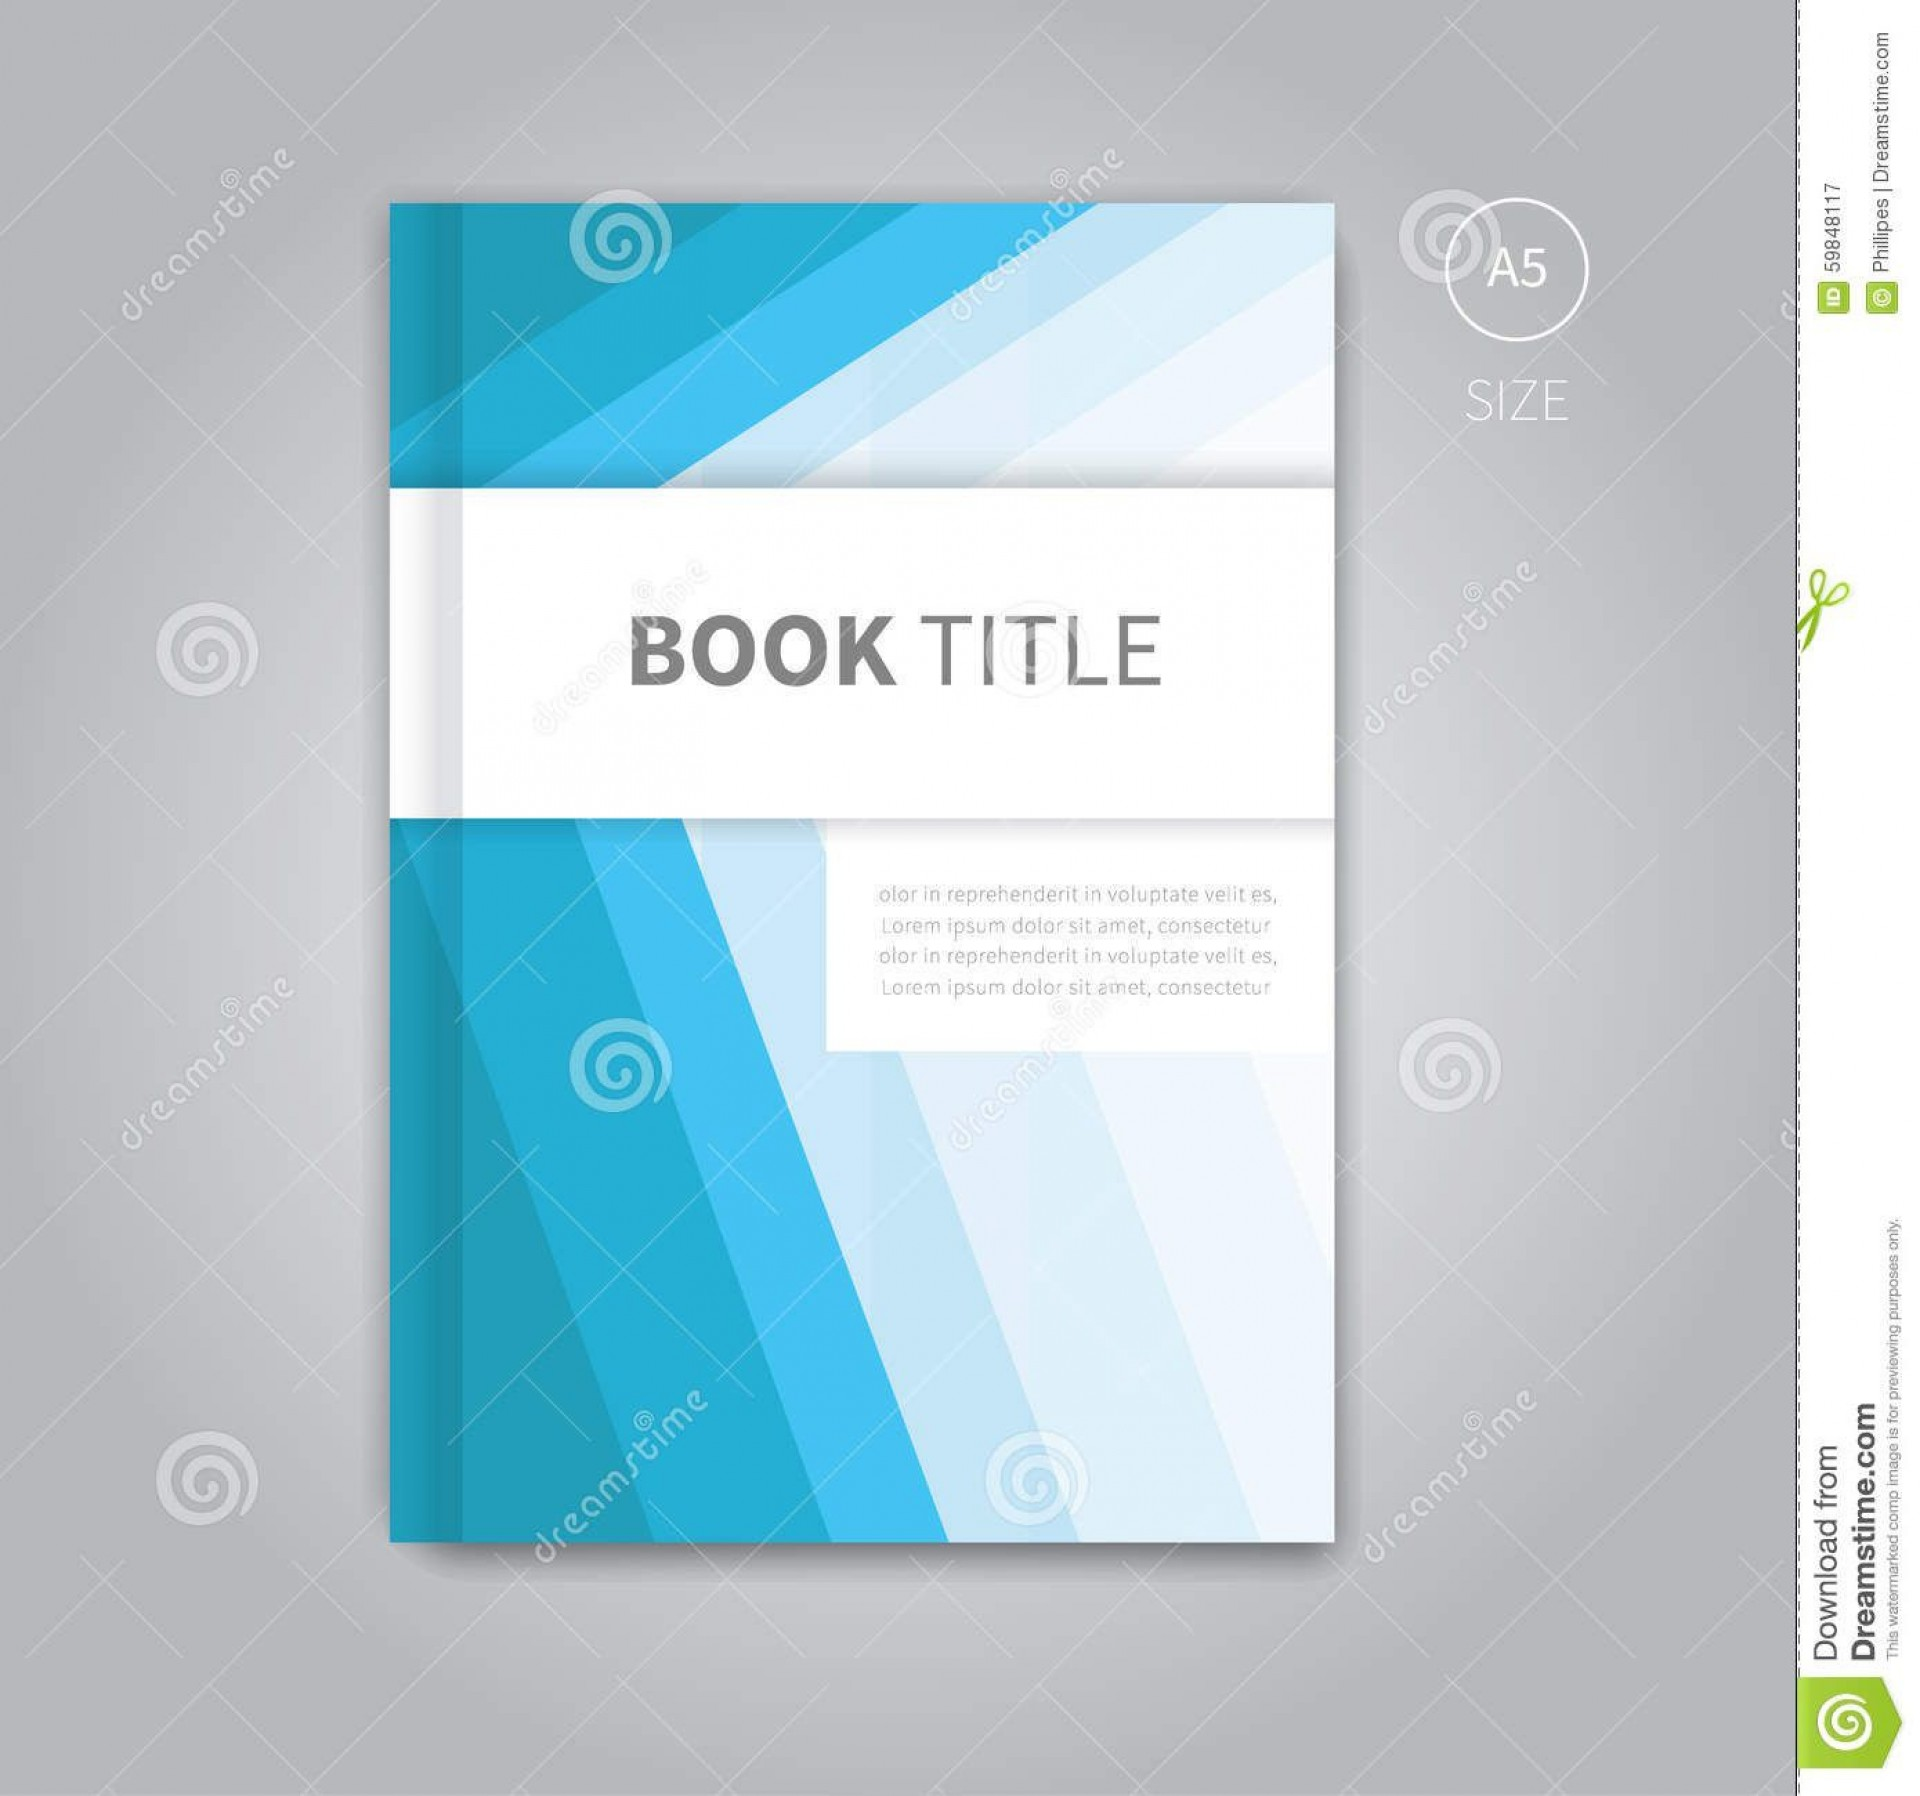 009 Awful Book Front Page Design Template Free Download High Def  Cover Psd1920